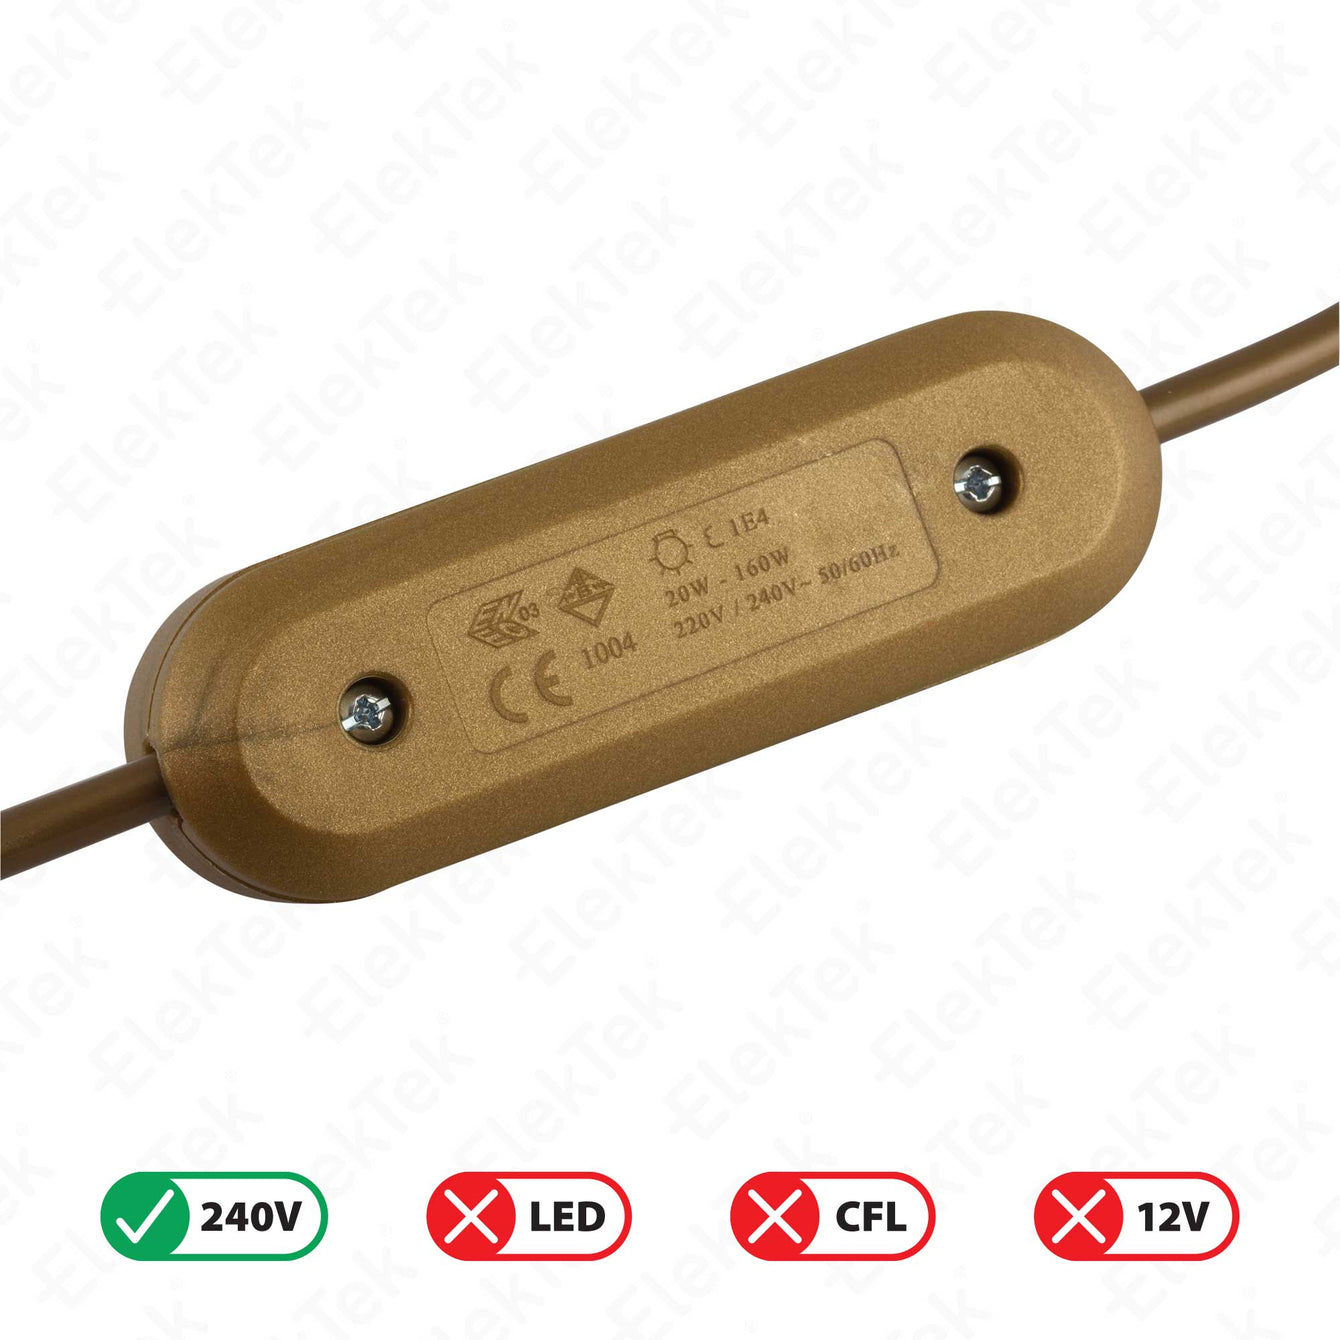 ElekTek In Line Rotary Dimmer Switch Rated 20-160w 240v AC 3 Core Suitable For Incandescent Lamps and Bulbs Colours